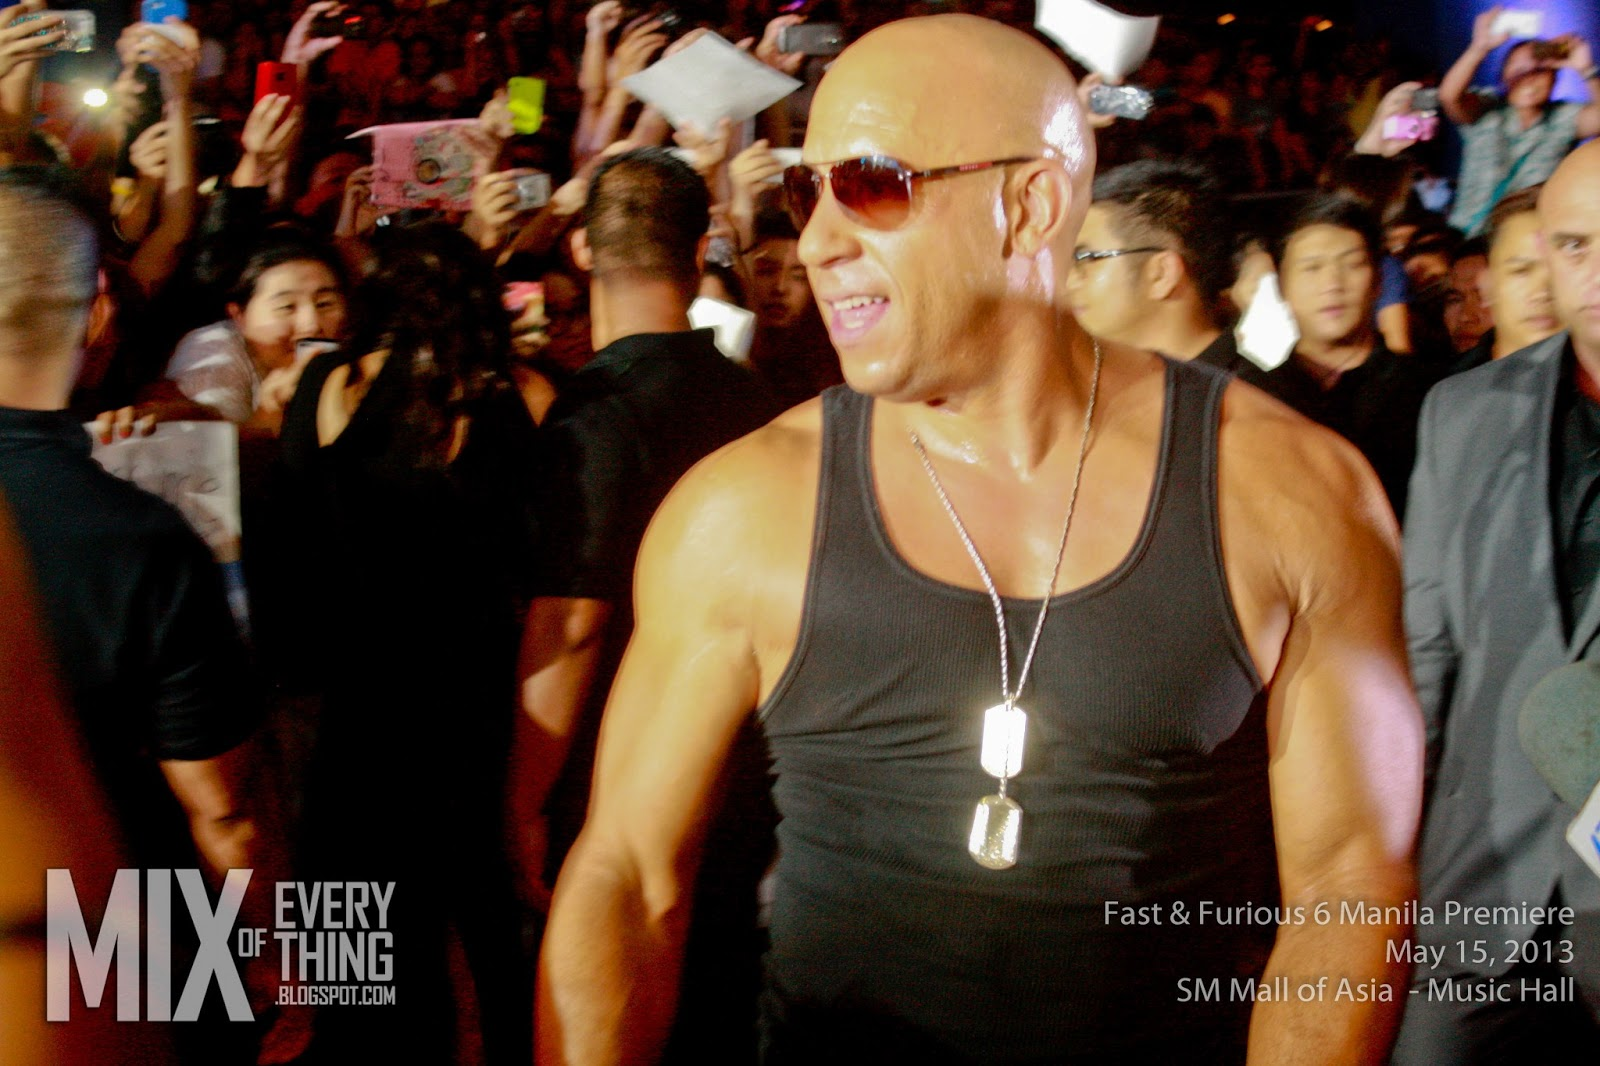 Vin diesel even mentioned that by far this is the best premiere that they have been to that the philippine premiere is amazing so yey philippines